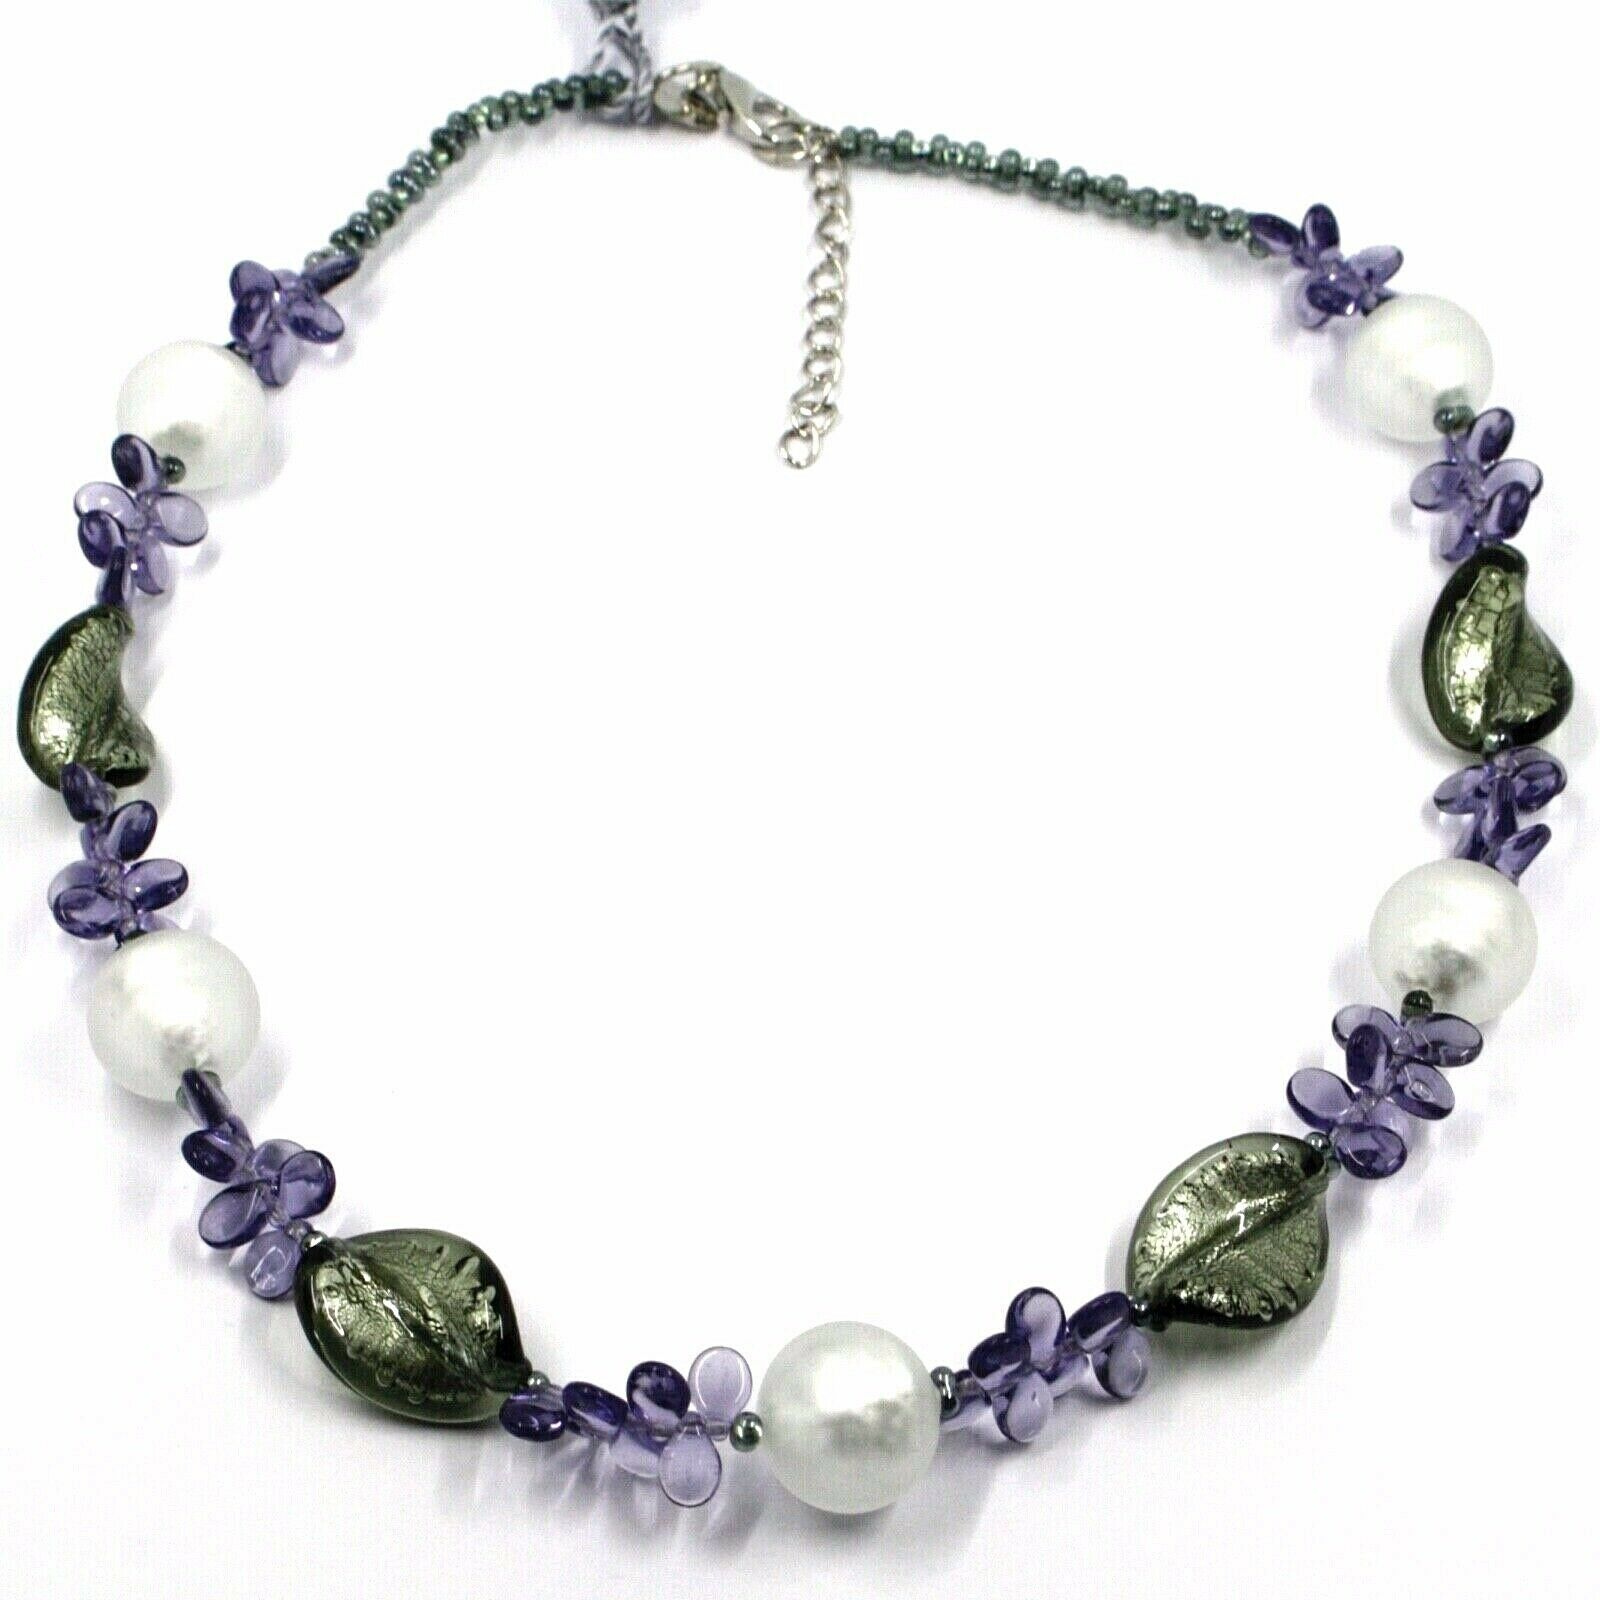 NECKLACE PURPLE PETALS DROPS, SATIN SILVER SPHERE SPIRAL WAVE MURANO GLASS ITALY